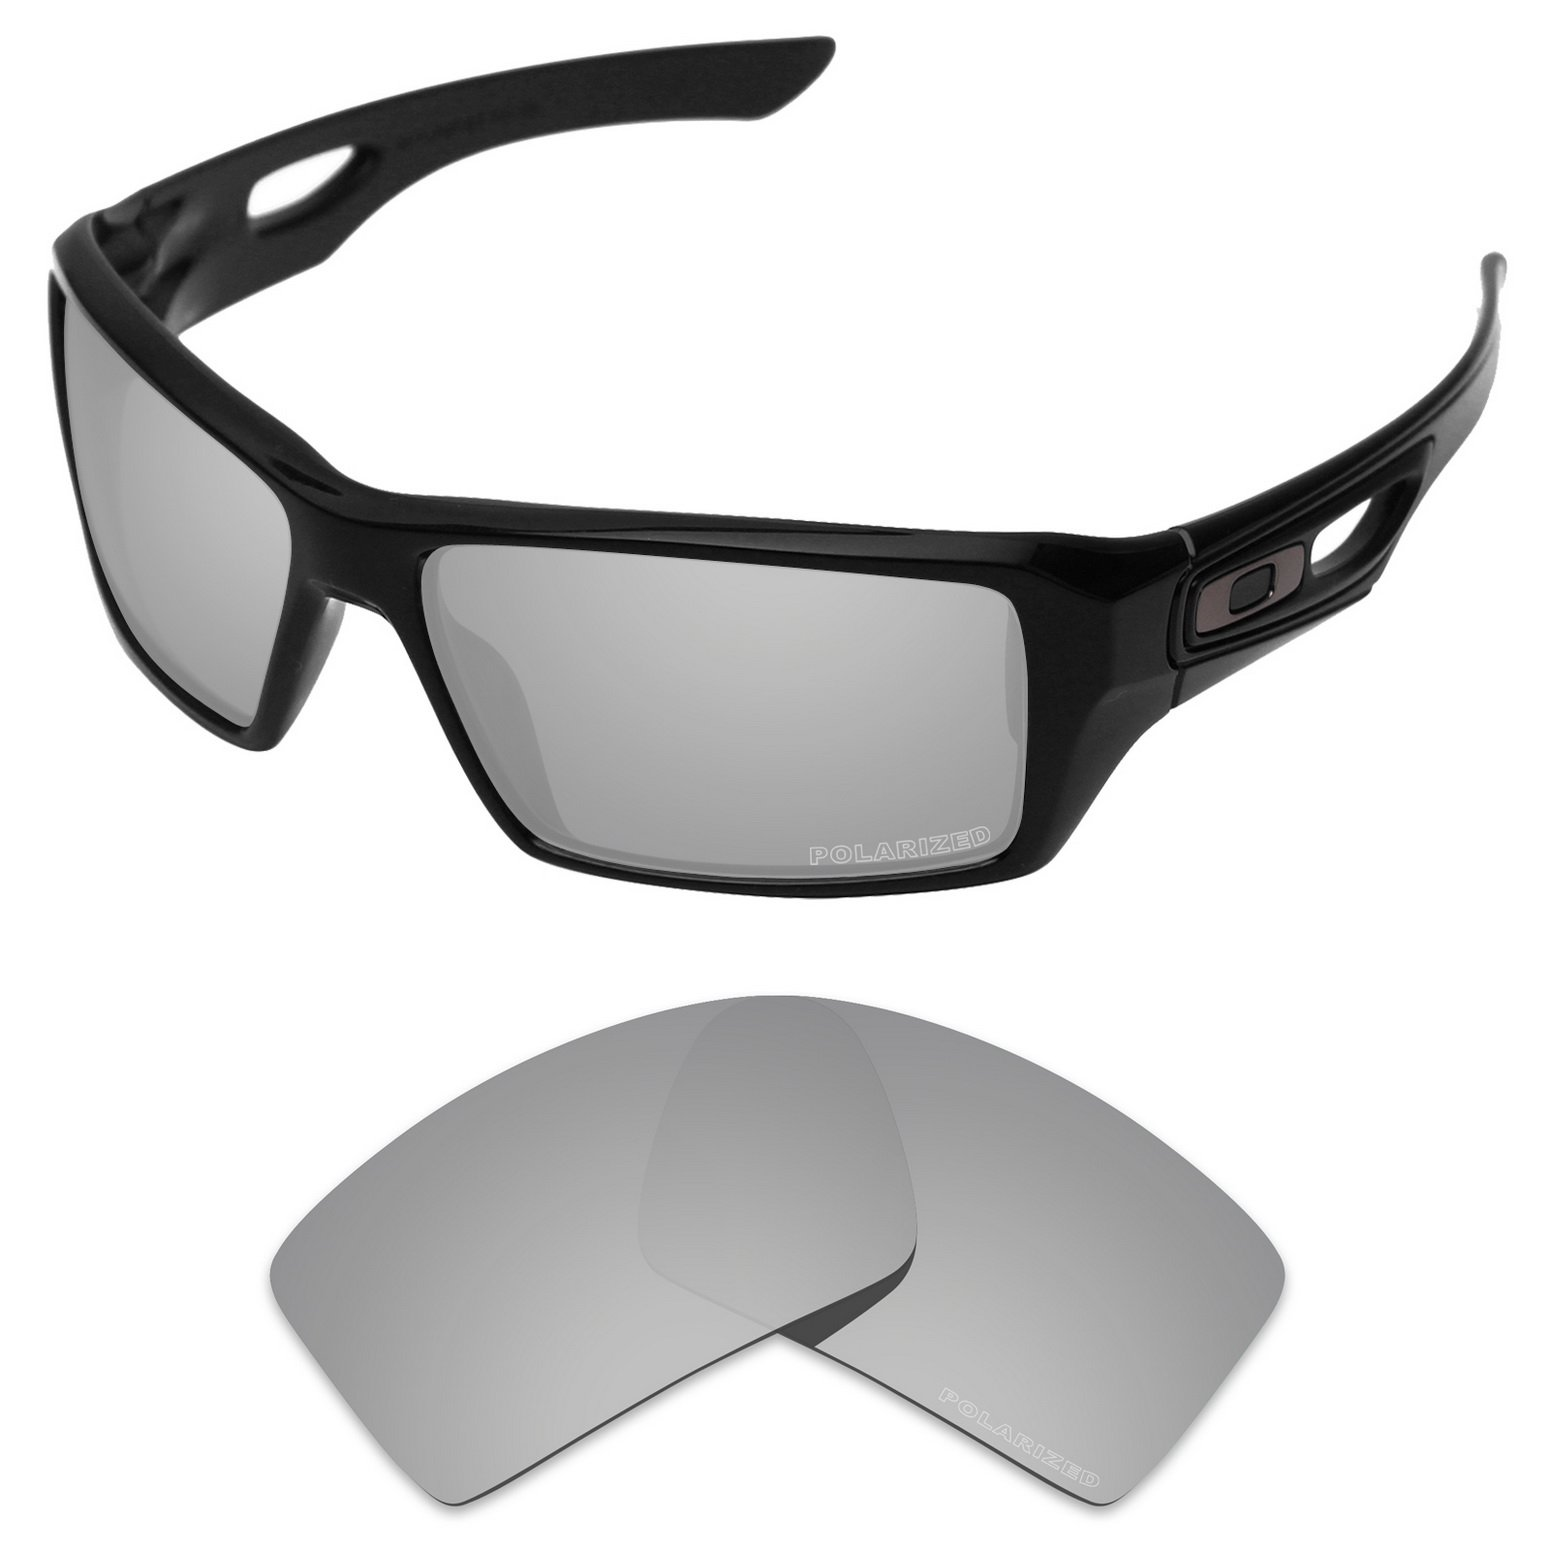 Tintart Performance Replacement Lenses for Oakley Eyepatch 1&2 Sunglass Polarized Etched-Silver Metallic